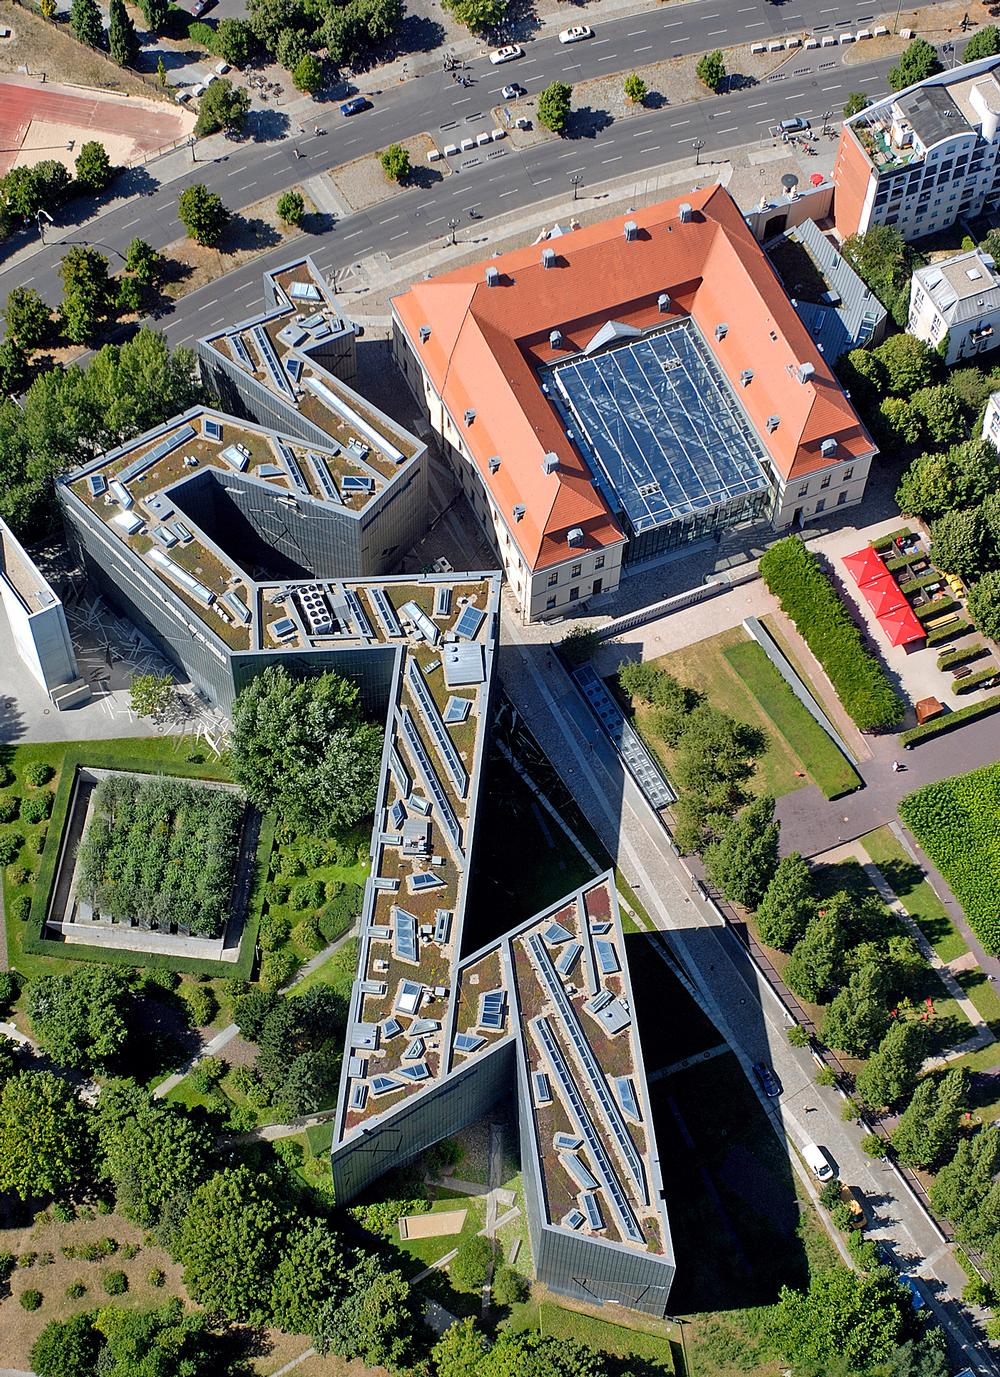 An aerial view of the Jewish Museum in Berlin, Germany / PHOTO: Guenther Schneider